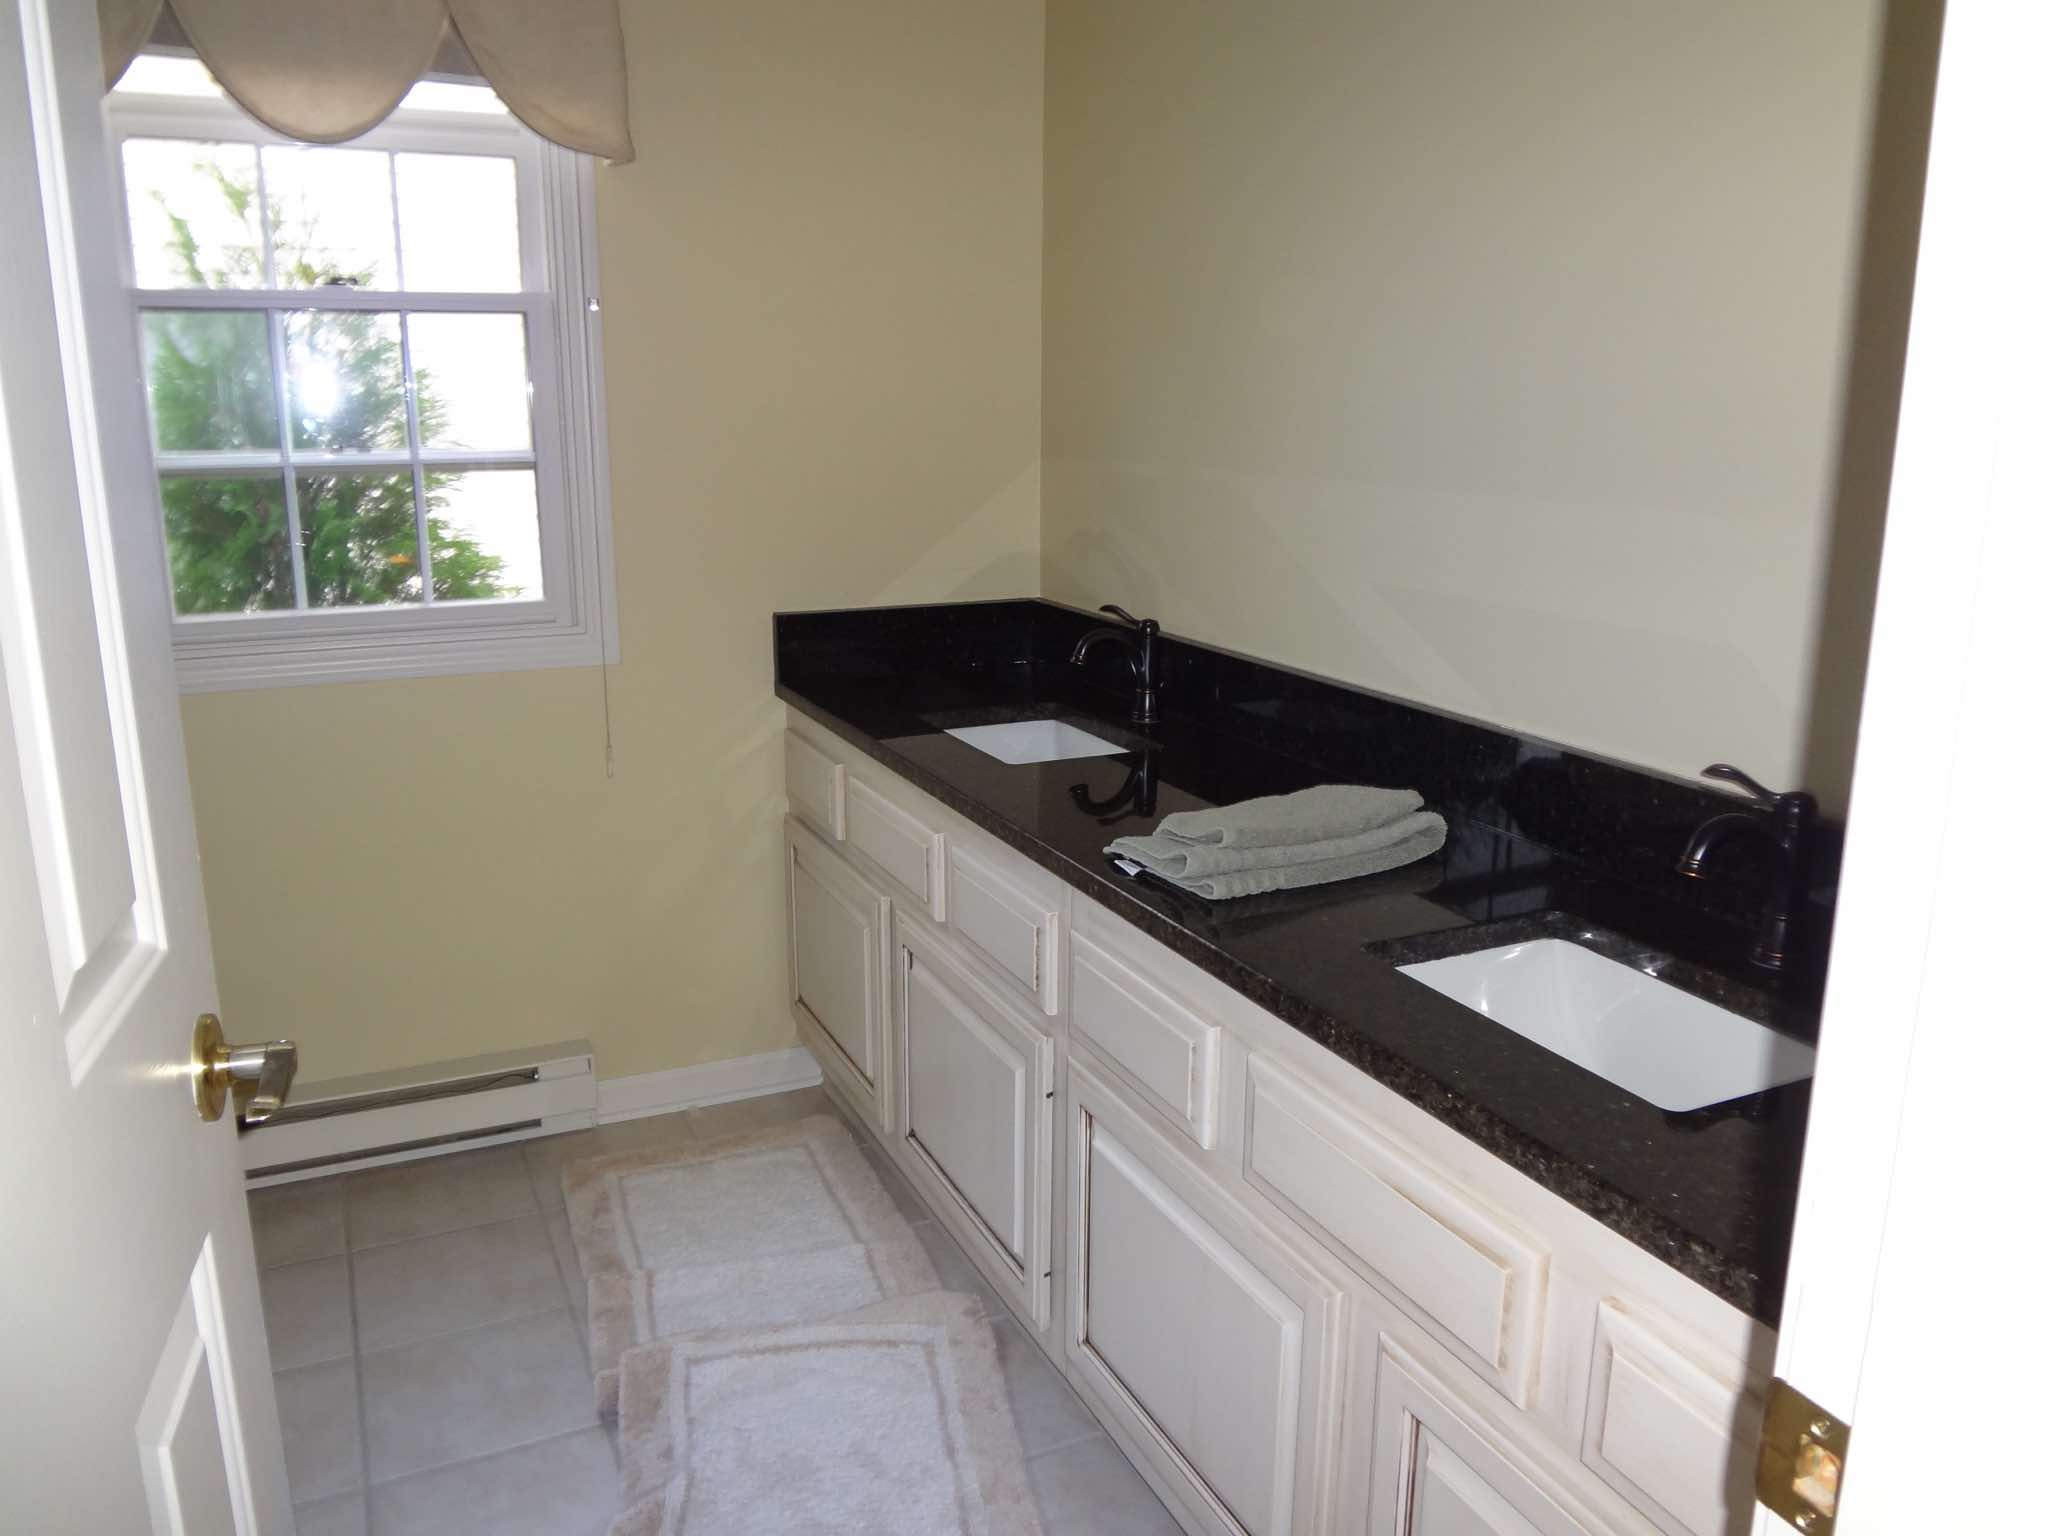 Bathtubs Omaha Refinishing Gallery Cabinets Detail Etc Painting